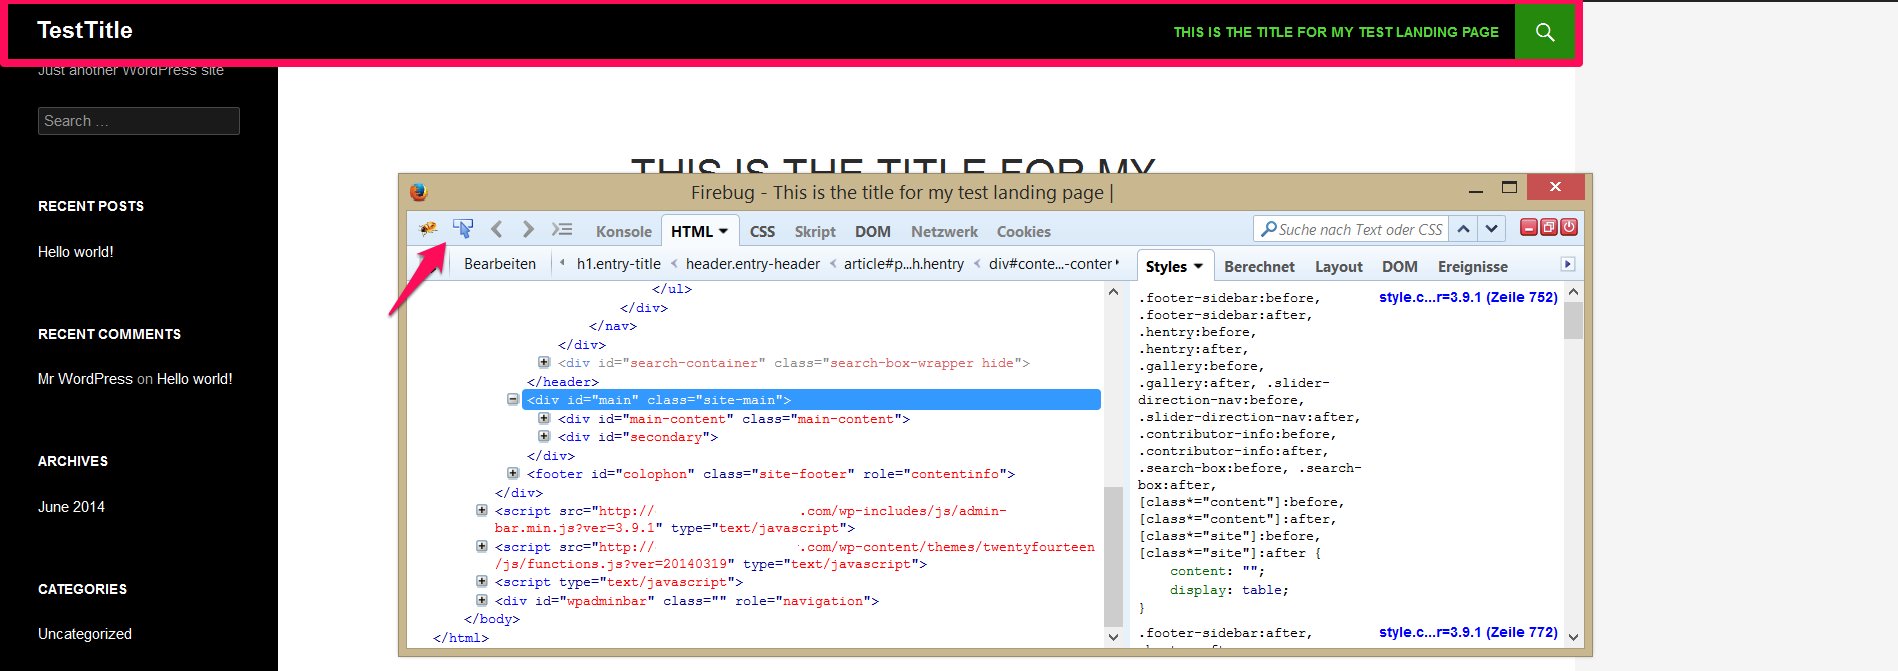 Inspect the site's element using Firebug